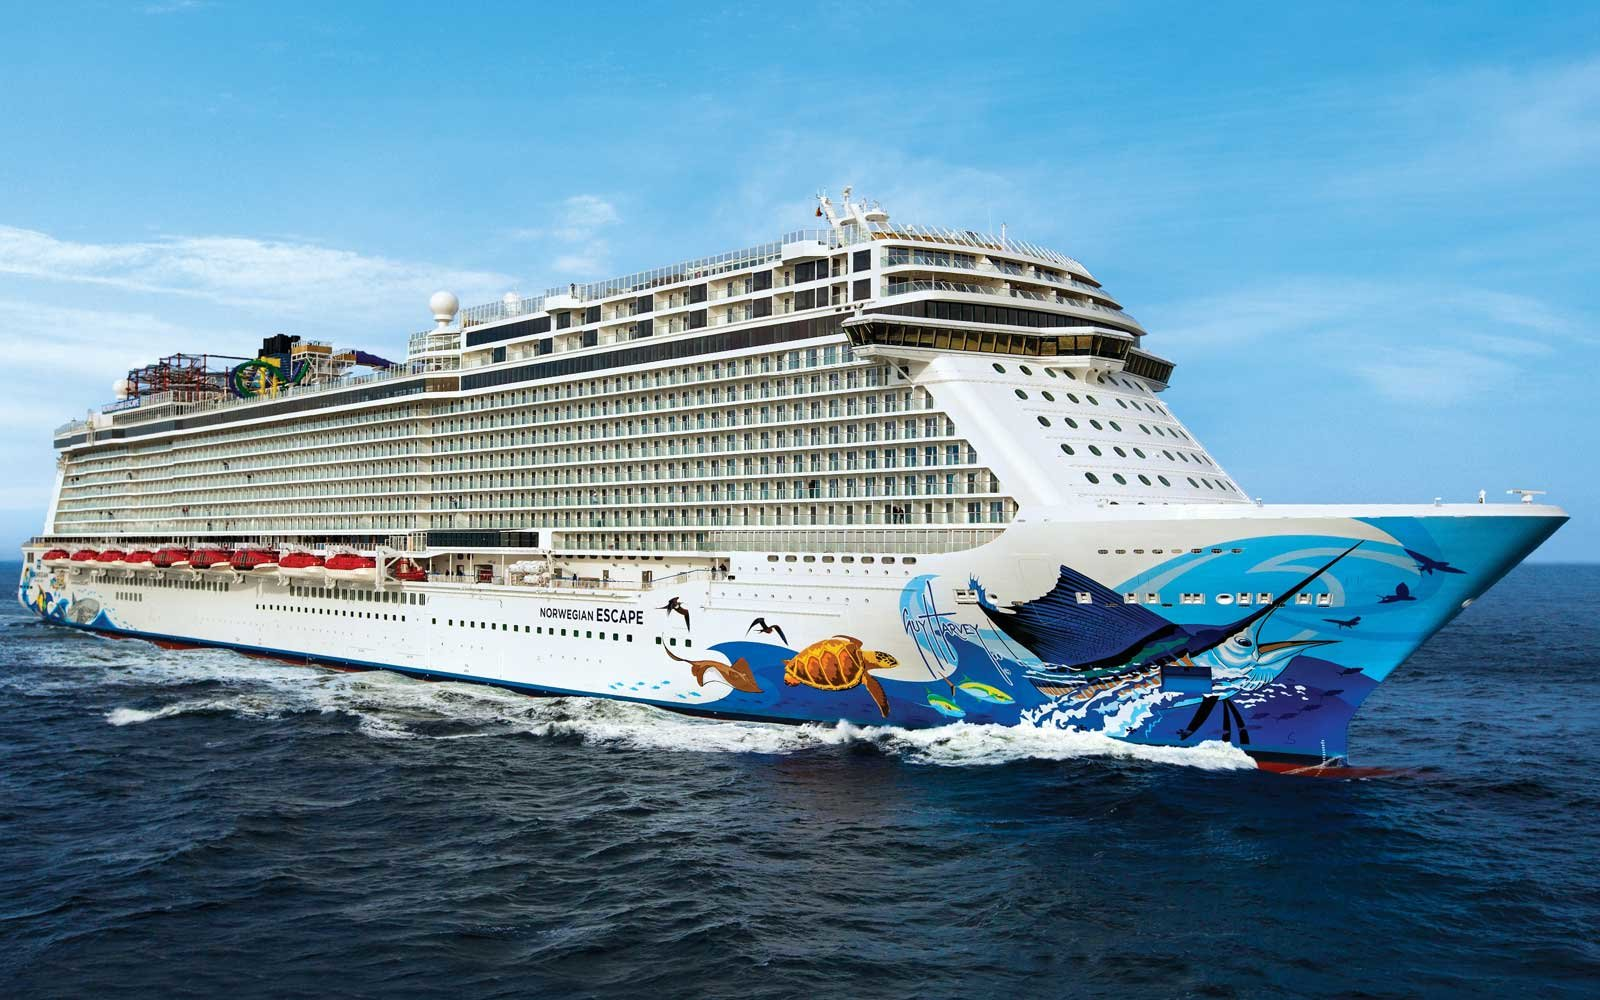 Five Things to Know About Norwegian Cruise Line's Escape Cruise Ship